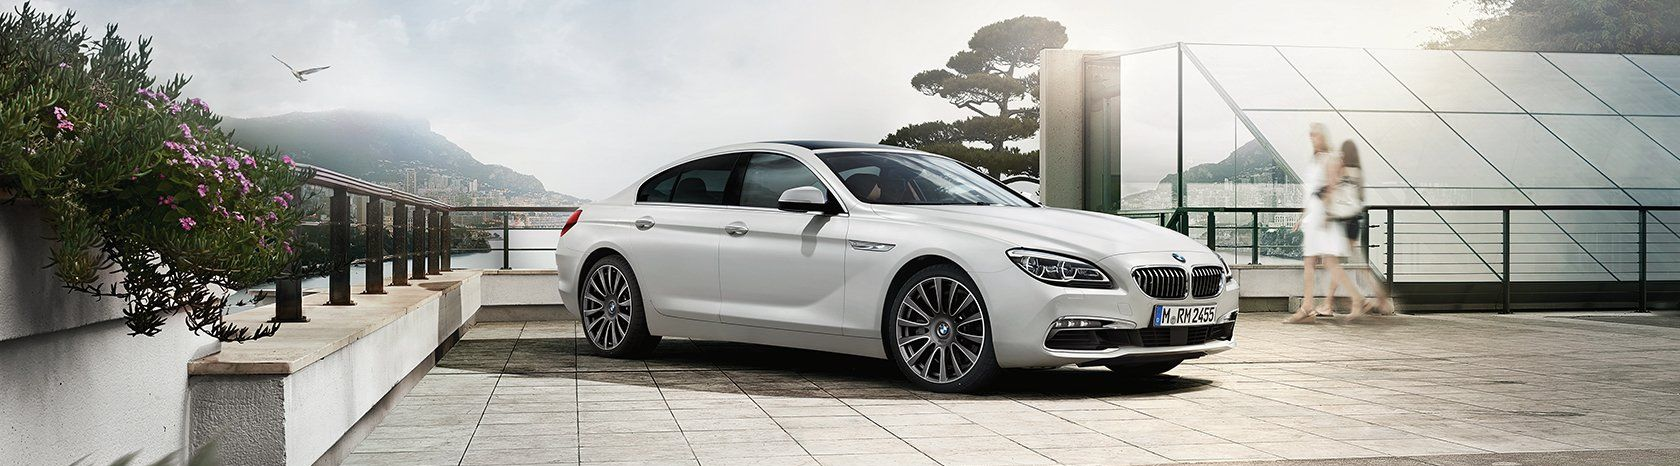 Used BMW Vehicles for Sale in Edmonton, AB - Canada Wide Auto Sales